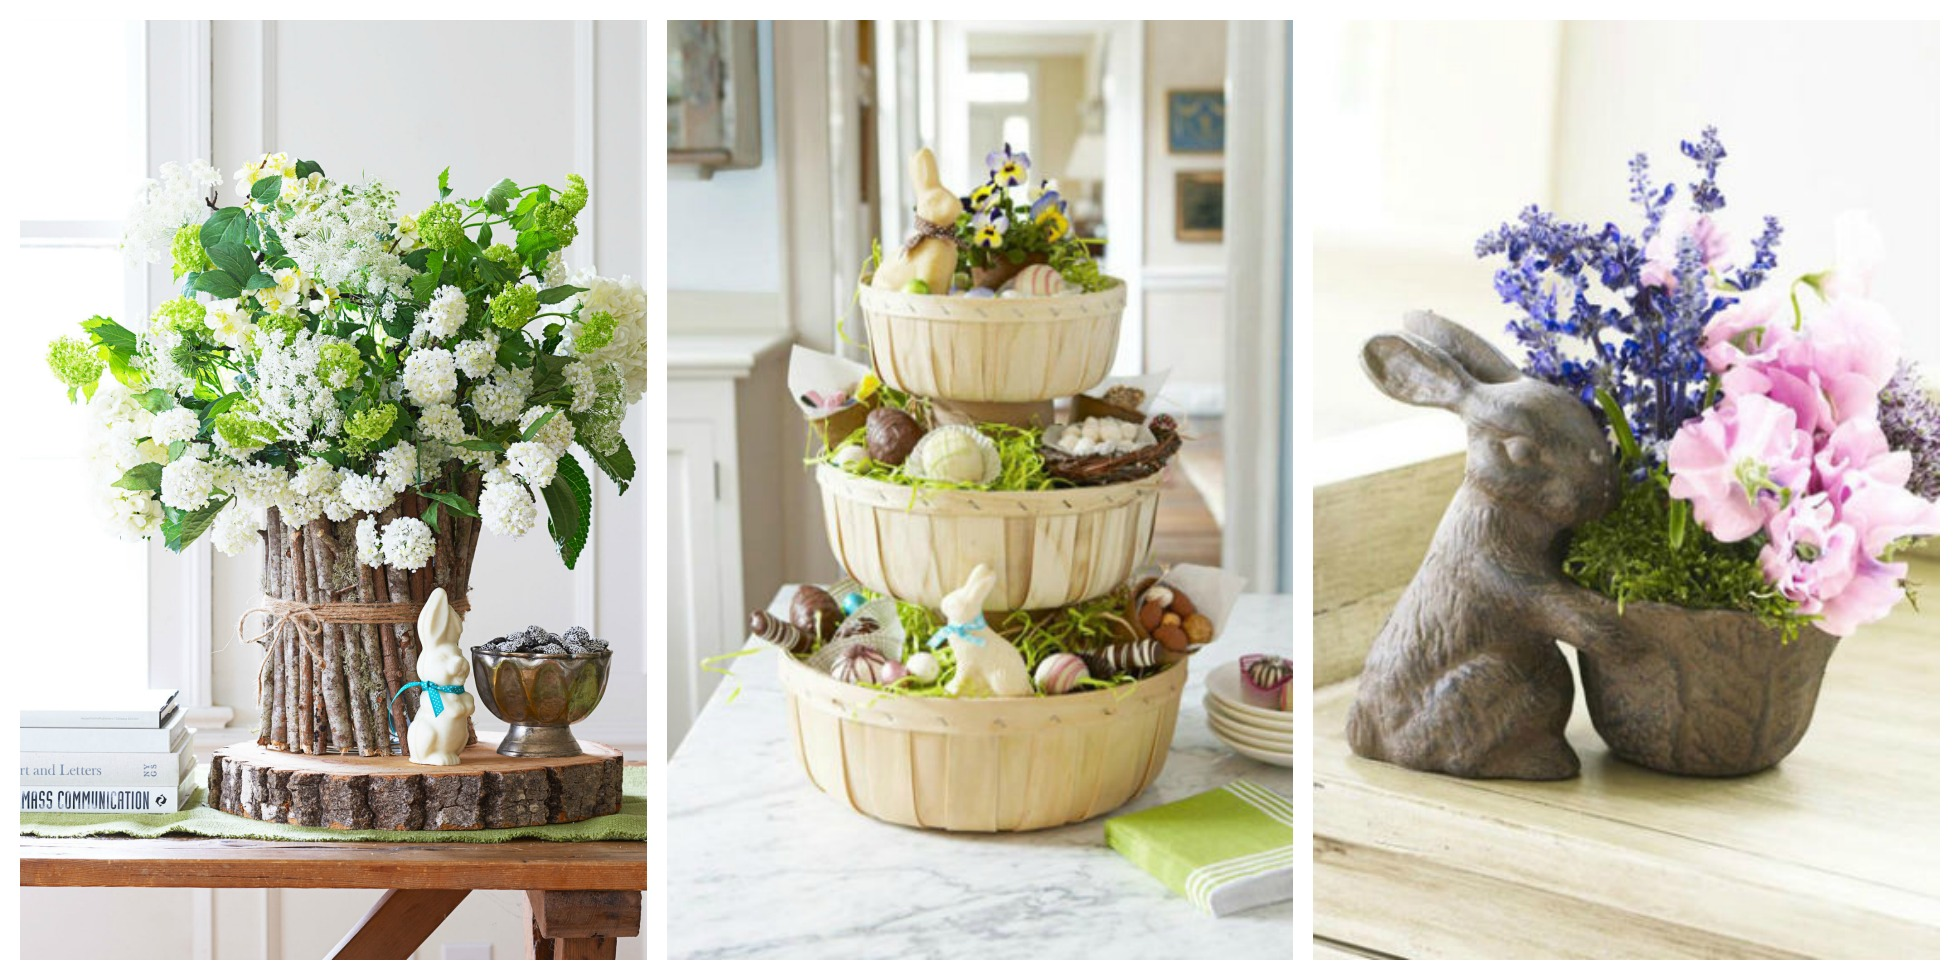 70 diy easter decorations ideas for homemade easter for House table decorations